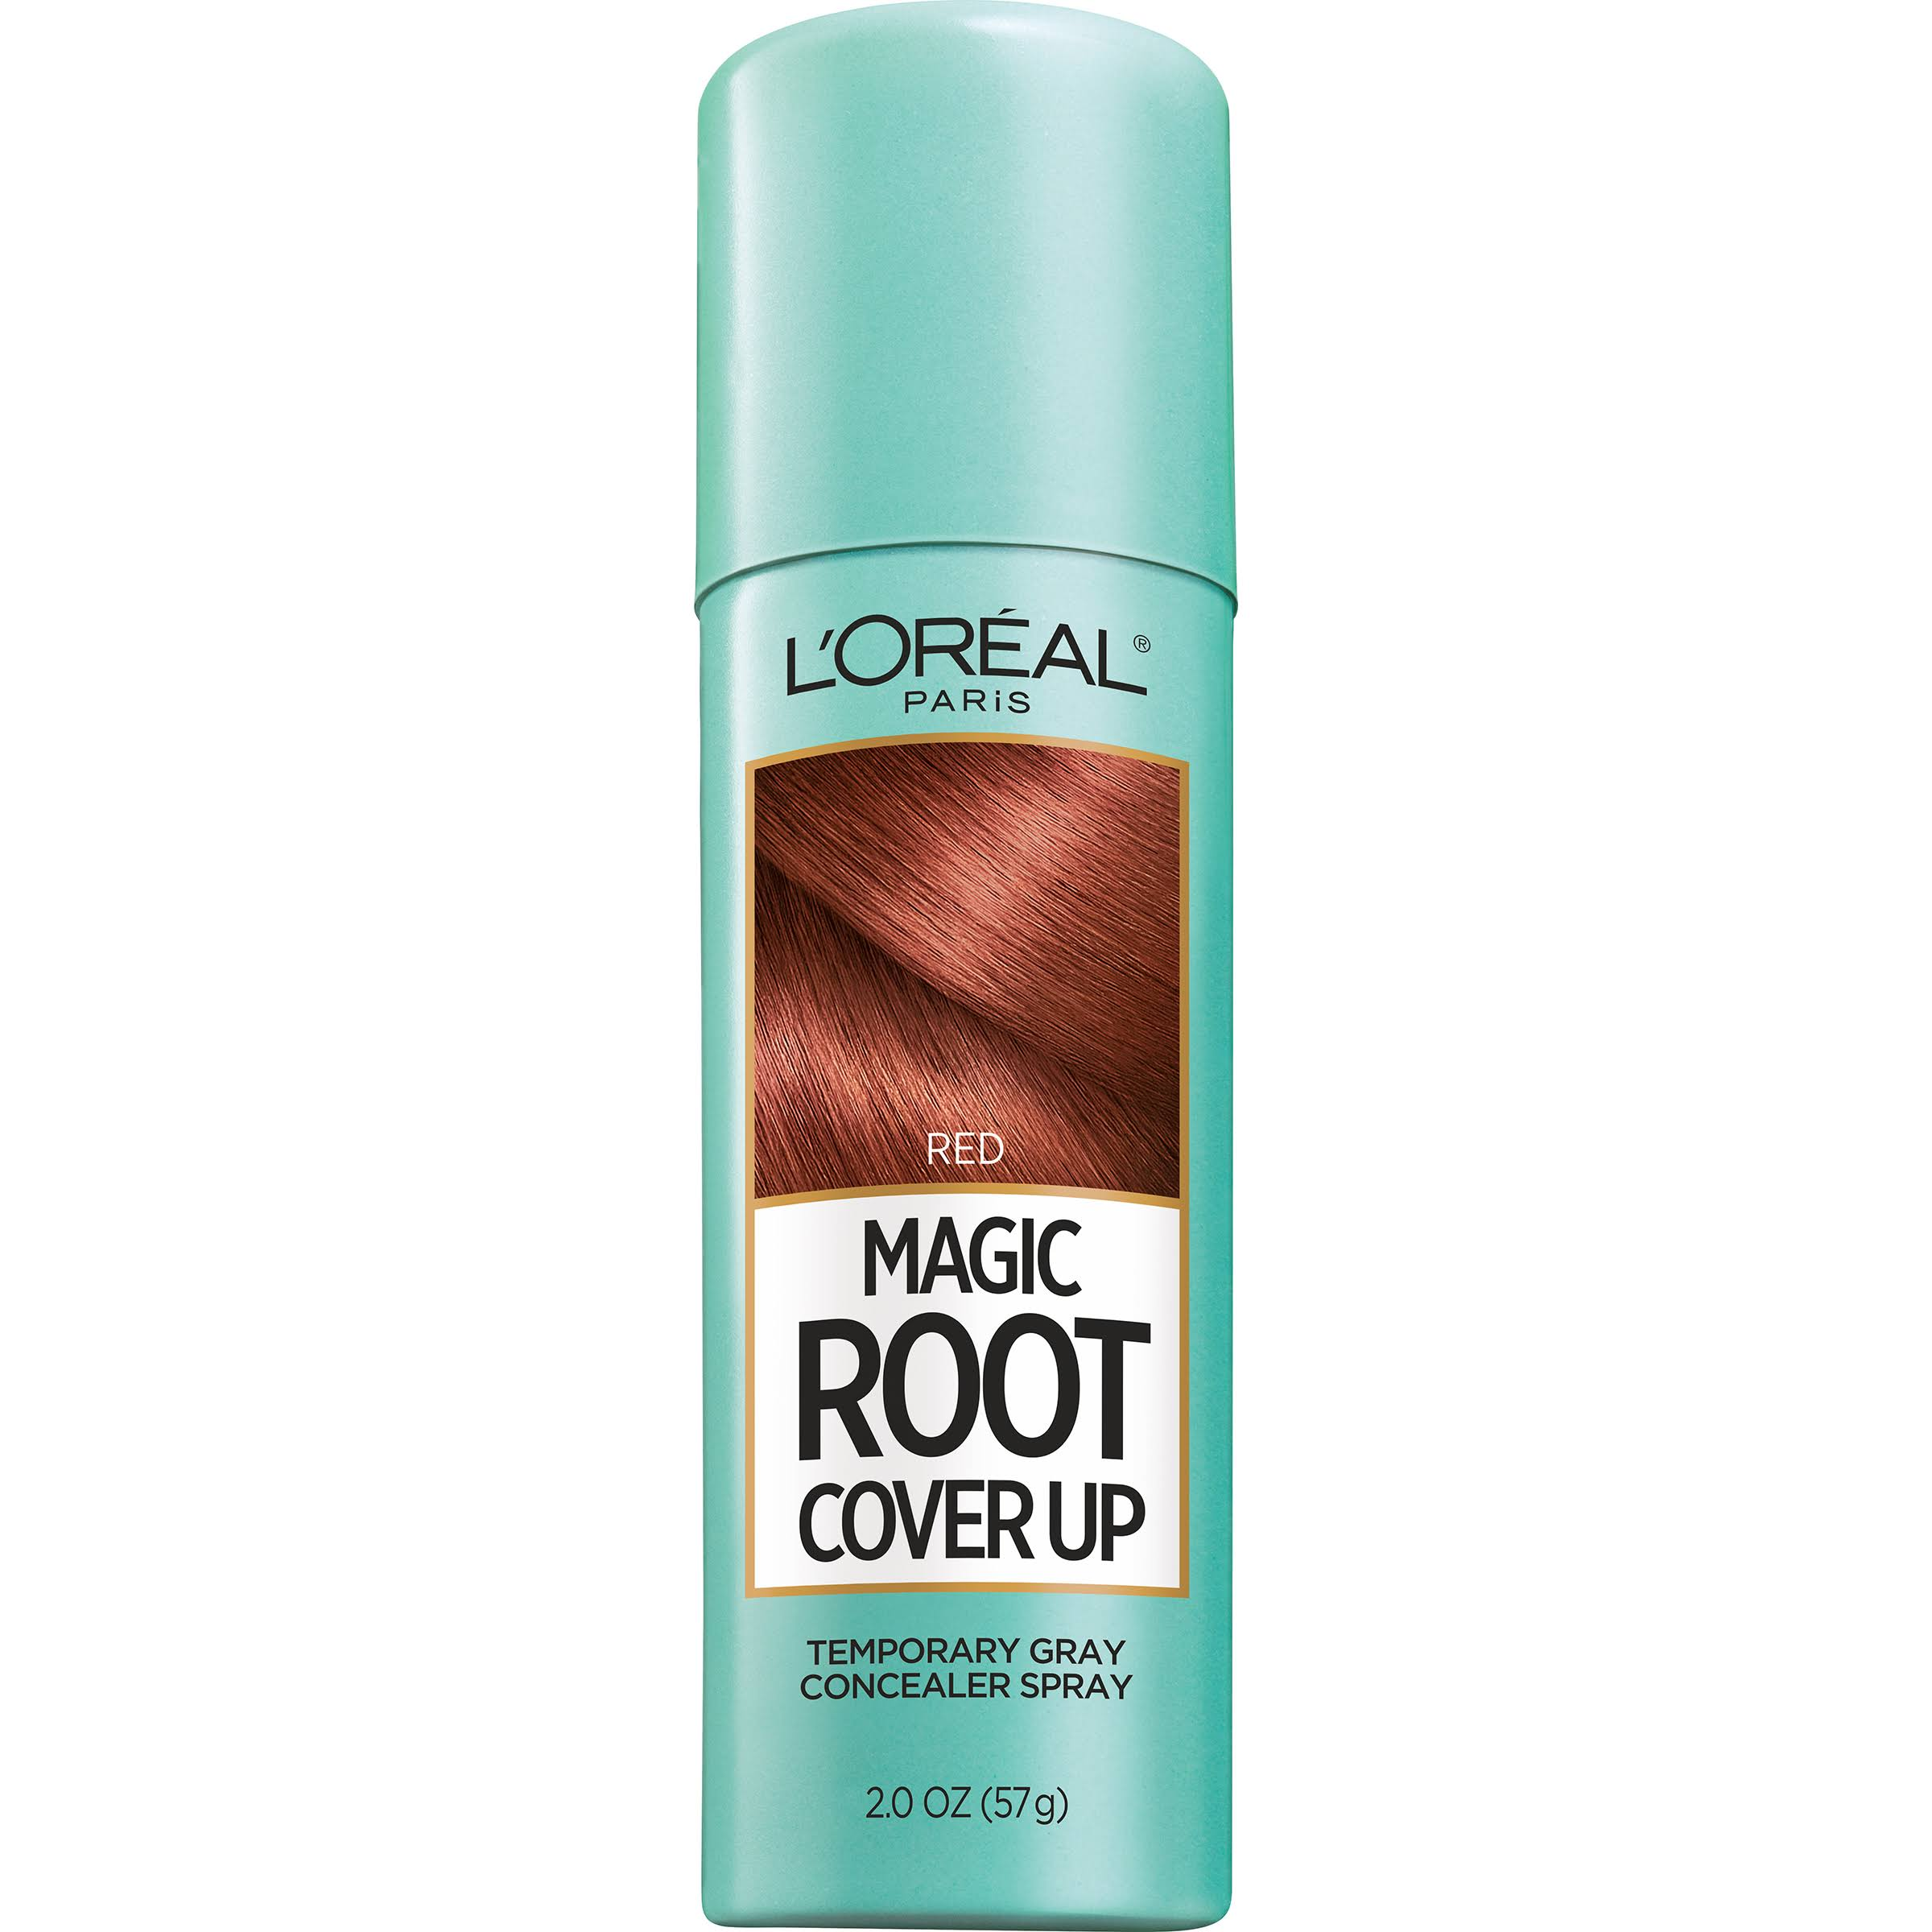 L'Oreal Paris Root Cover Up Temporary Gray Concealer Spray - 2.0oz